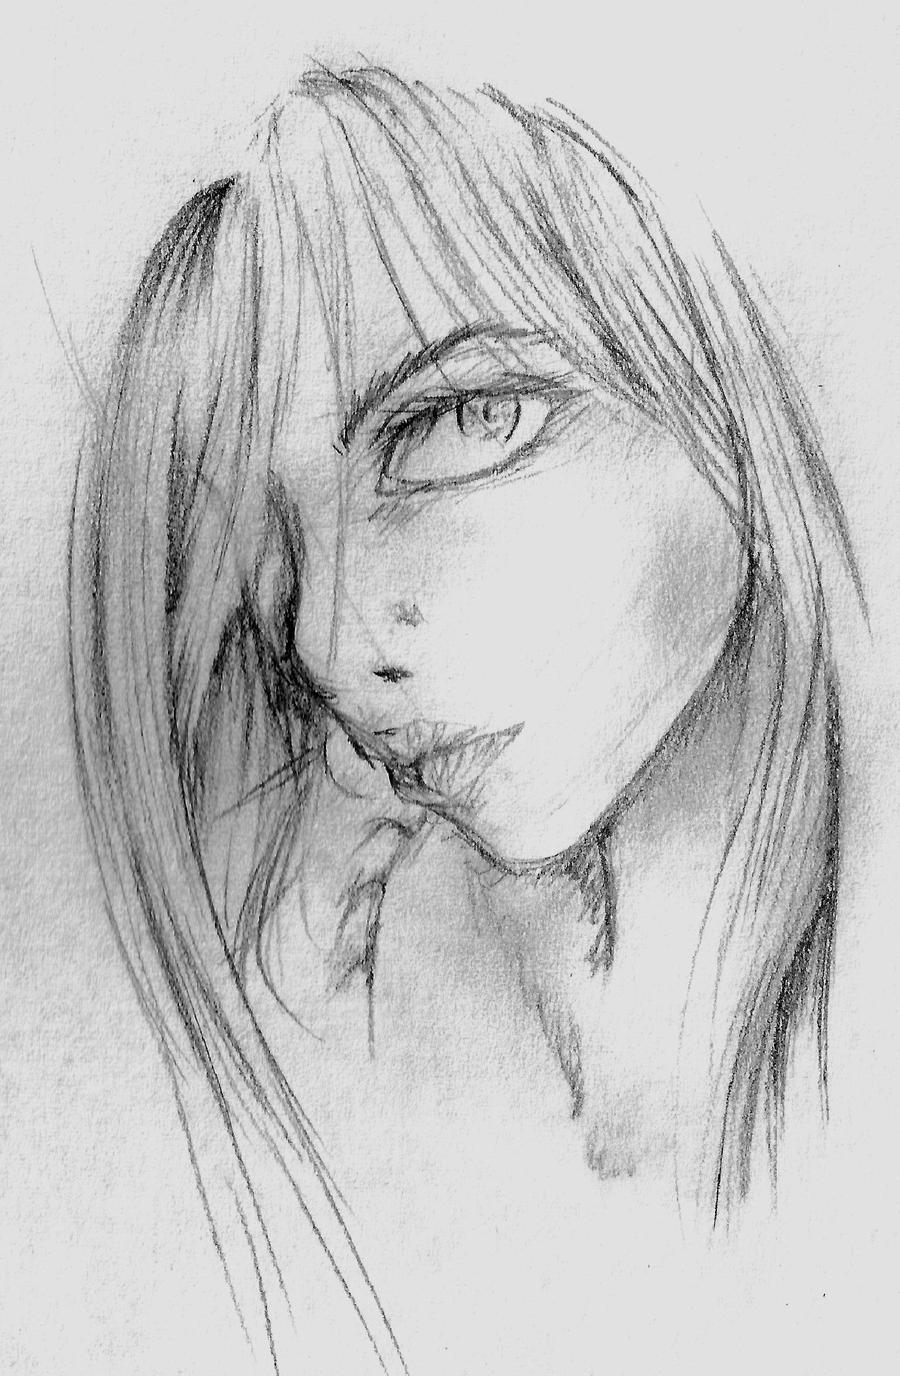 Drawings of anime people in pencil person sketch anime style pencil drawings of anime people